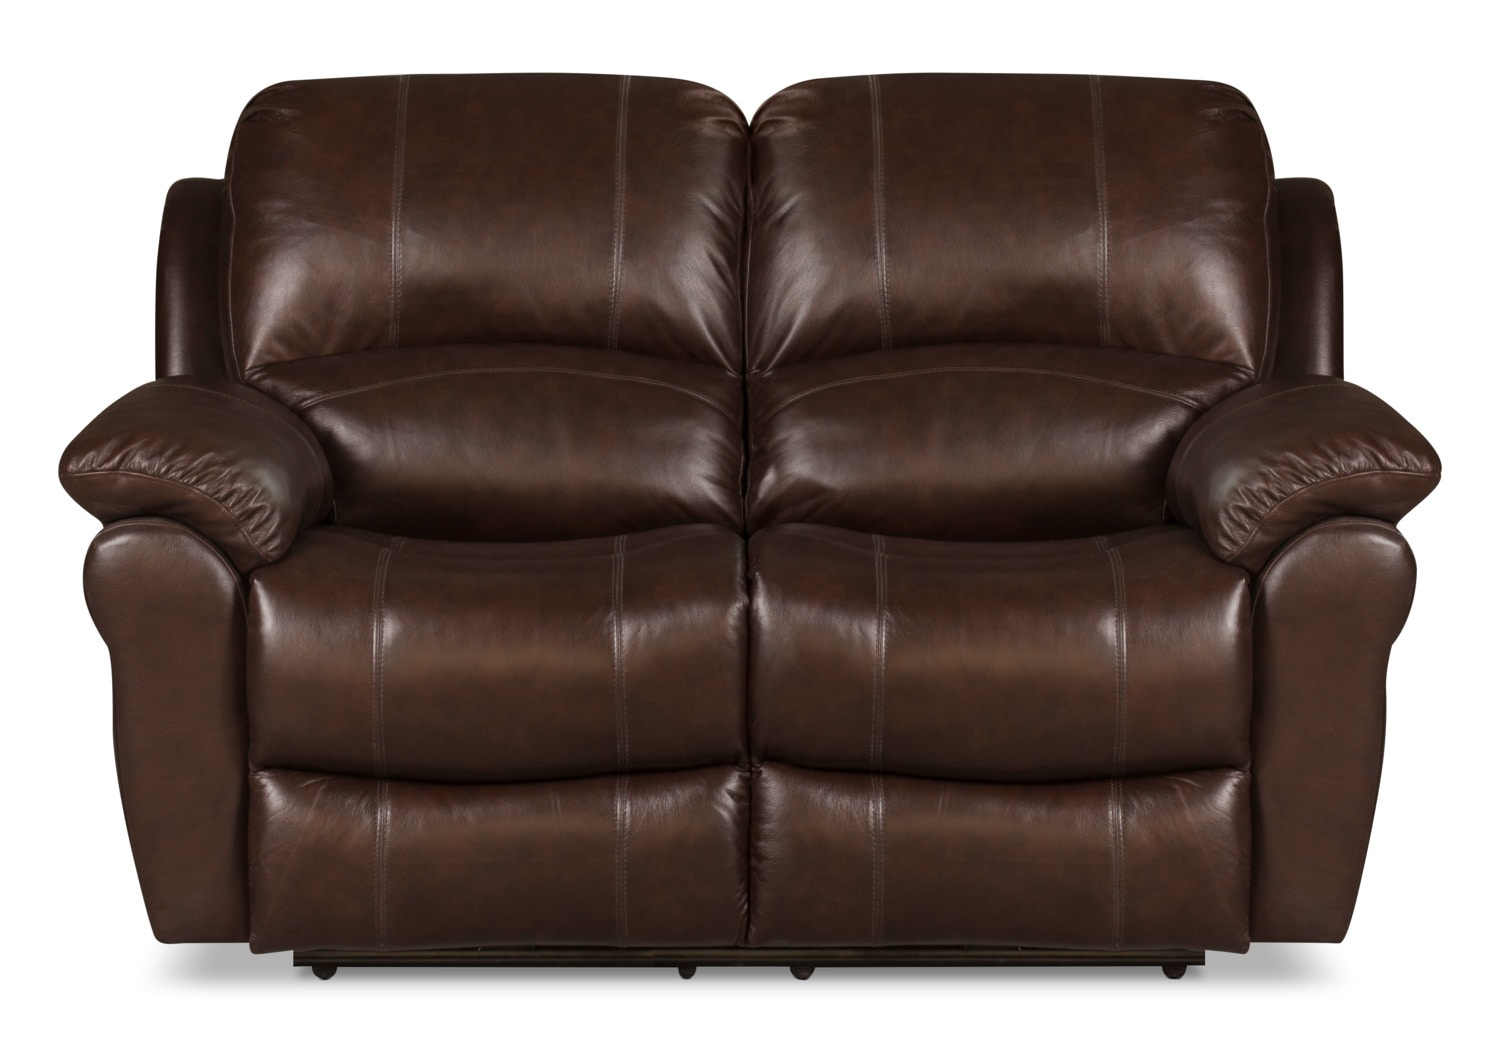 Kobe Genuine Leather Power Reclining Loveseat – Brown